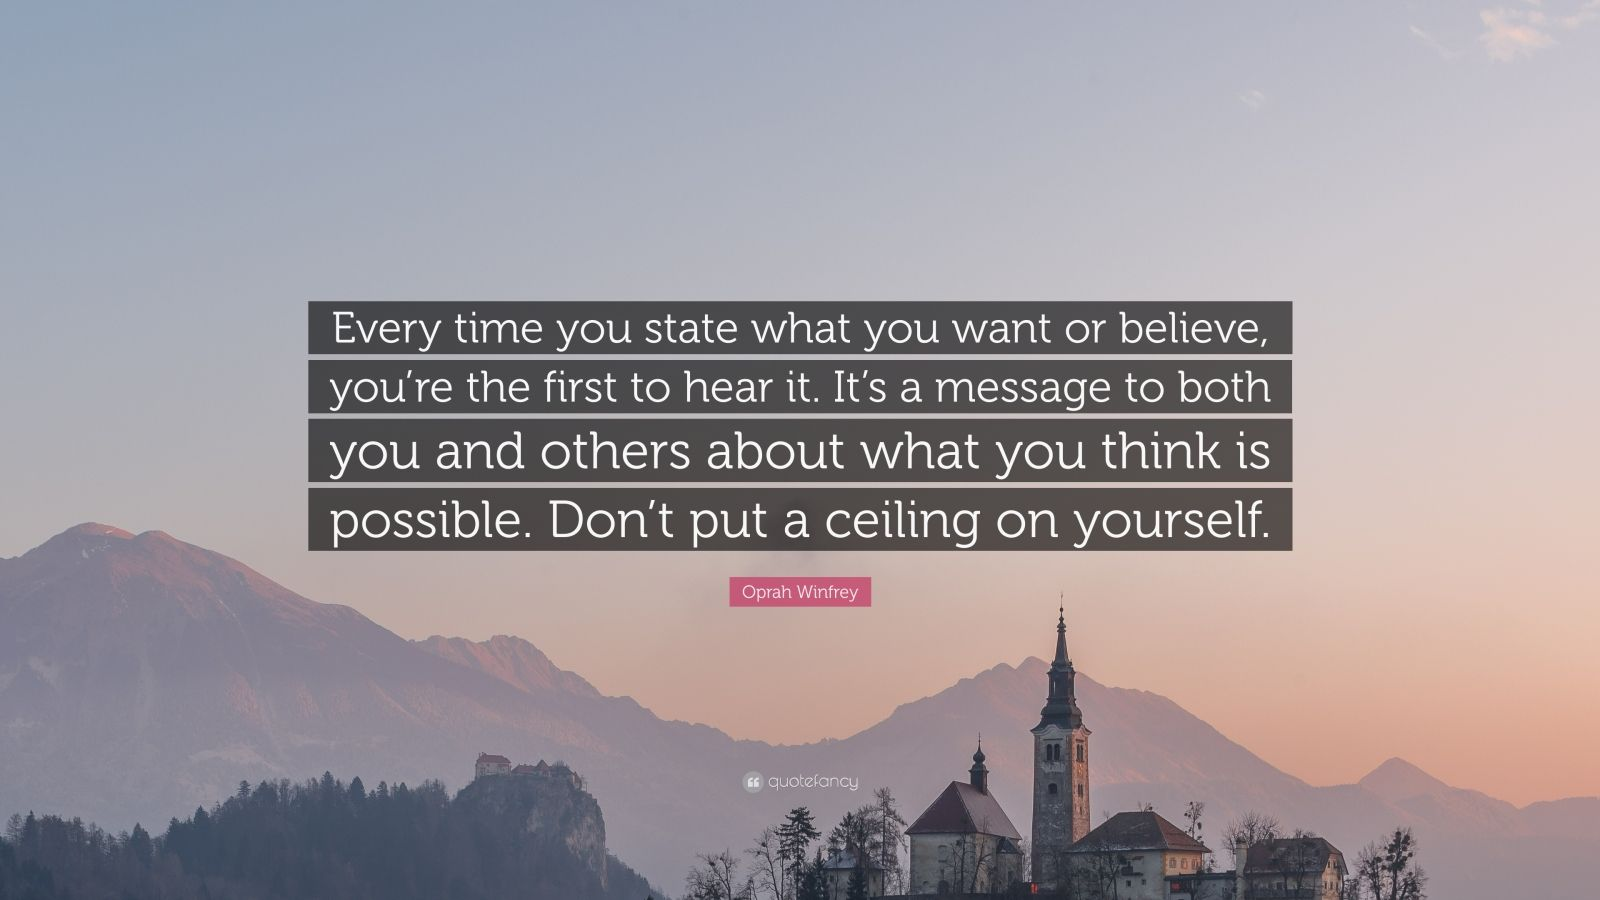 """Oprah Winfrey Quote: """"Every time you state what you want or believe, you're the first to hear it. It's a message to both you and others about what you think is possible. Don't put a ceiling on yourself."""""""